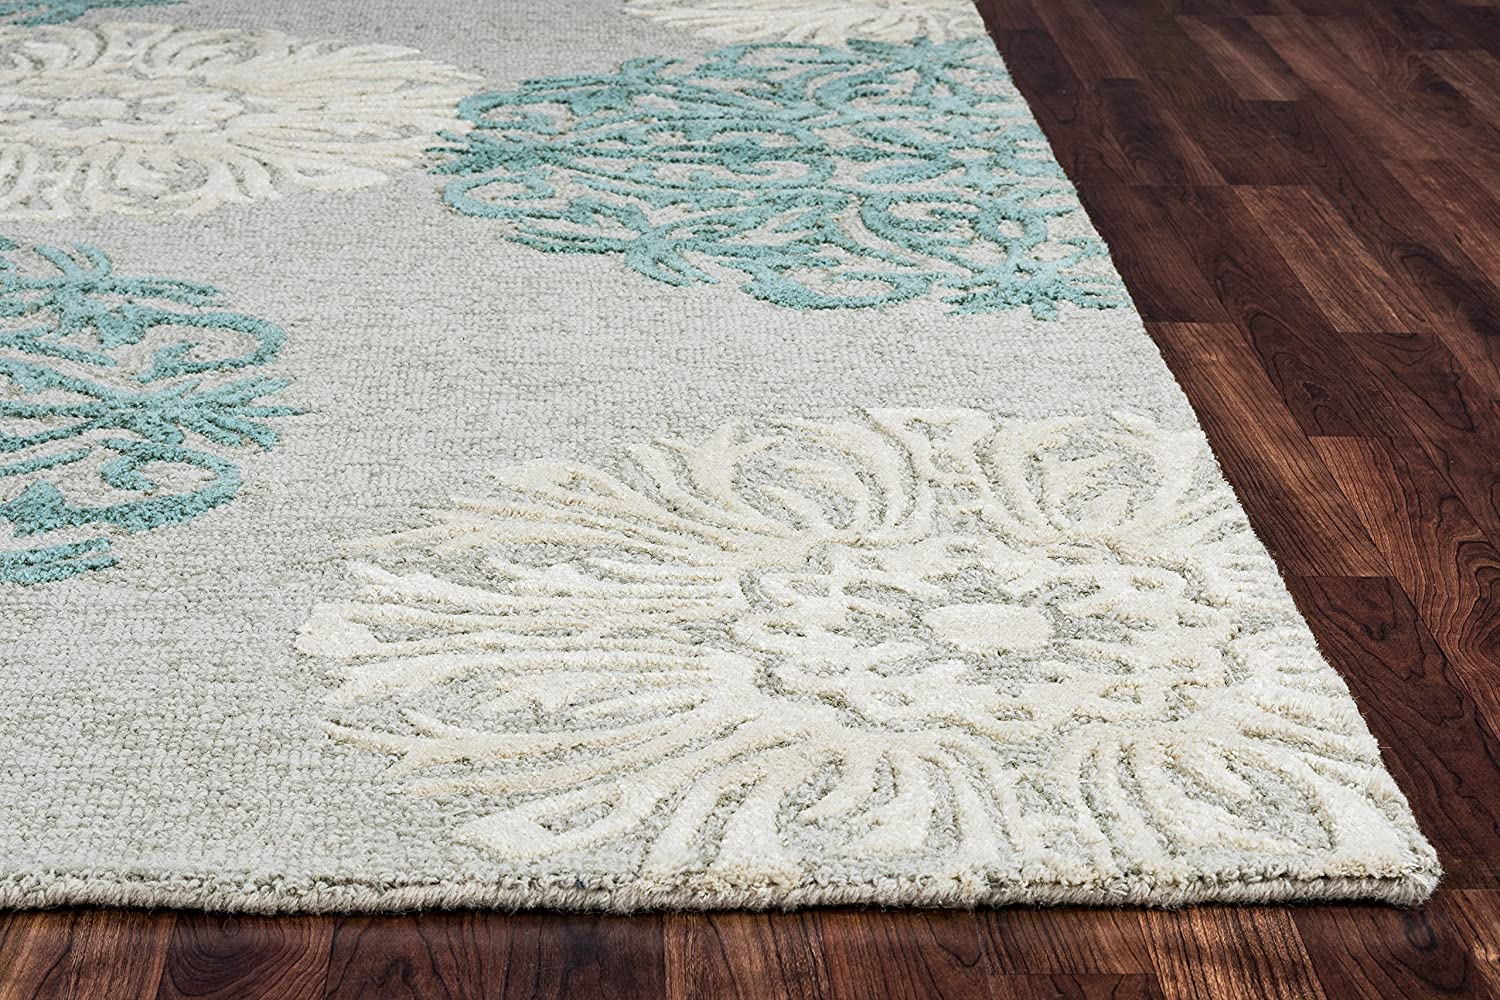 Amazon.com: Rizzy Home DI2241 Dimensions 8-Feet by 10-Feet Area Rug, Light  Gray: Kitchen & Dining - Amazon.com: Rizzy Home DI2241 Dimensions 8-Feet By 10-Feet Area